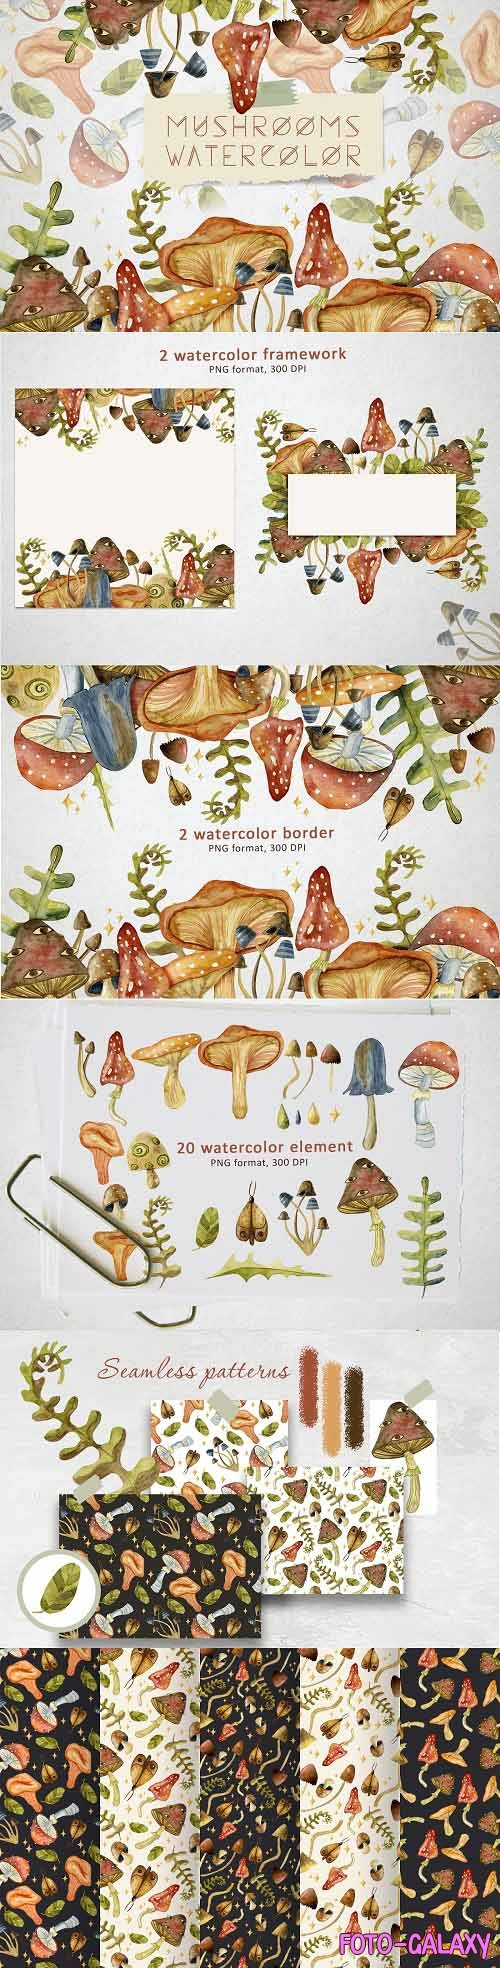 Watercolor Mushrooms - 5764505